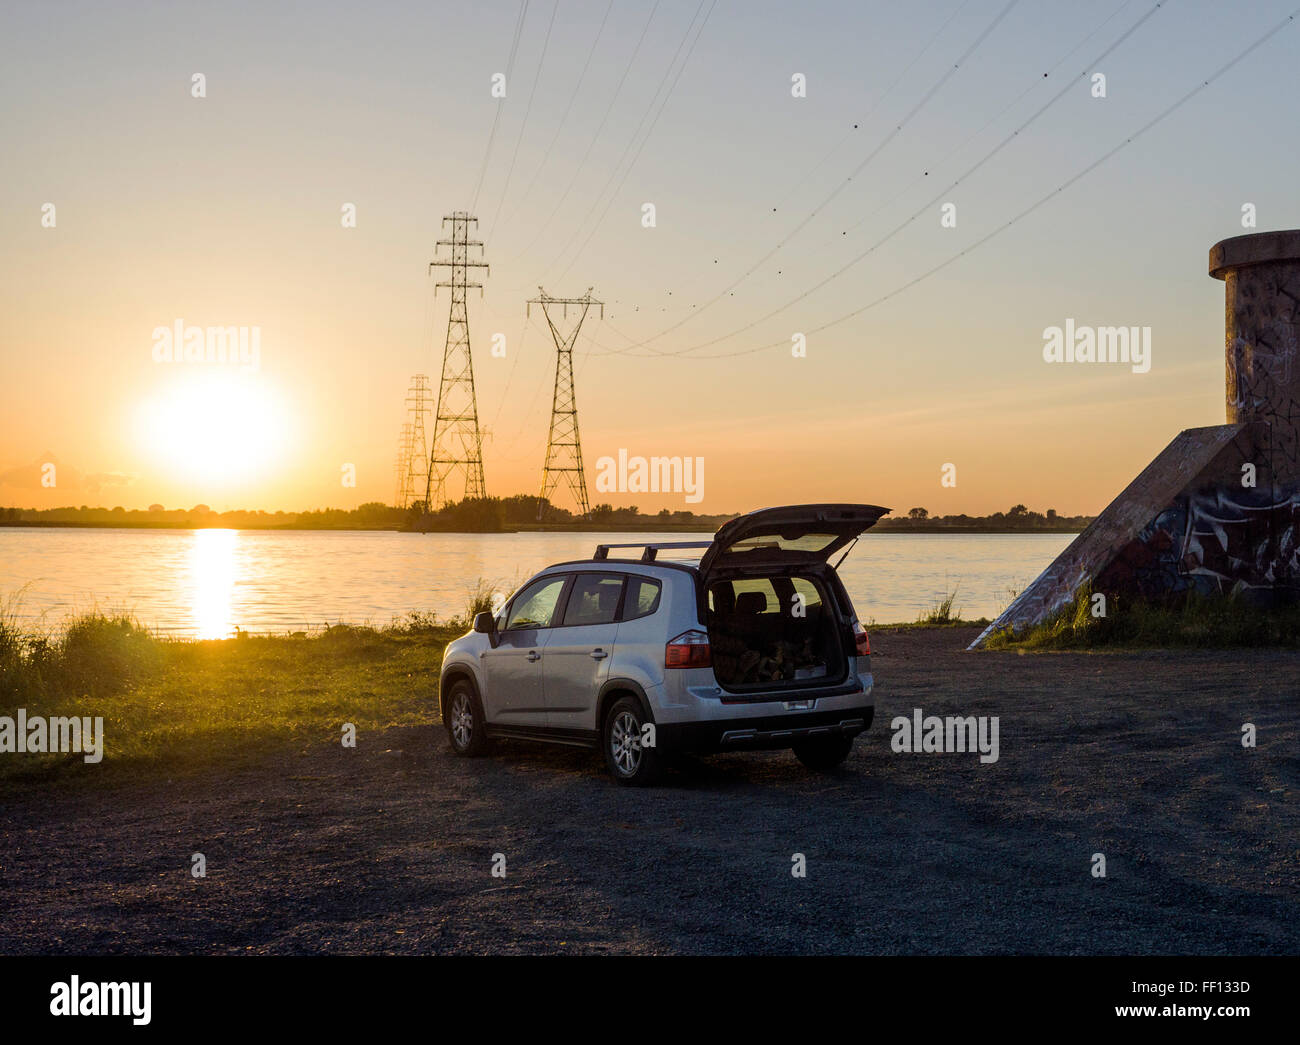 Car parked on rural lake shore - Stock Image